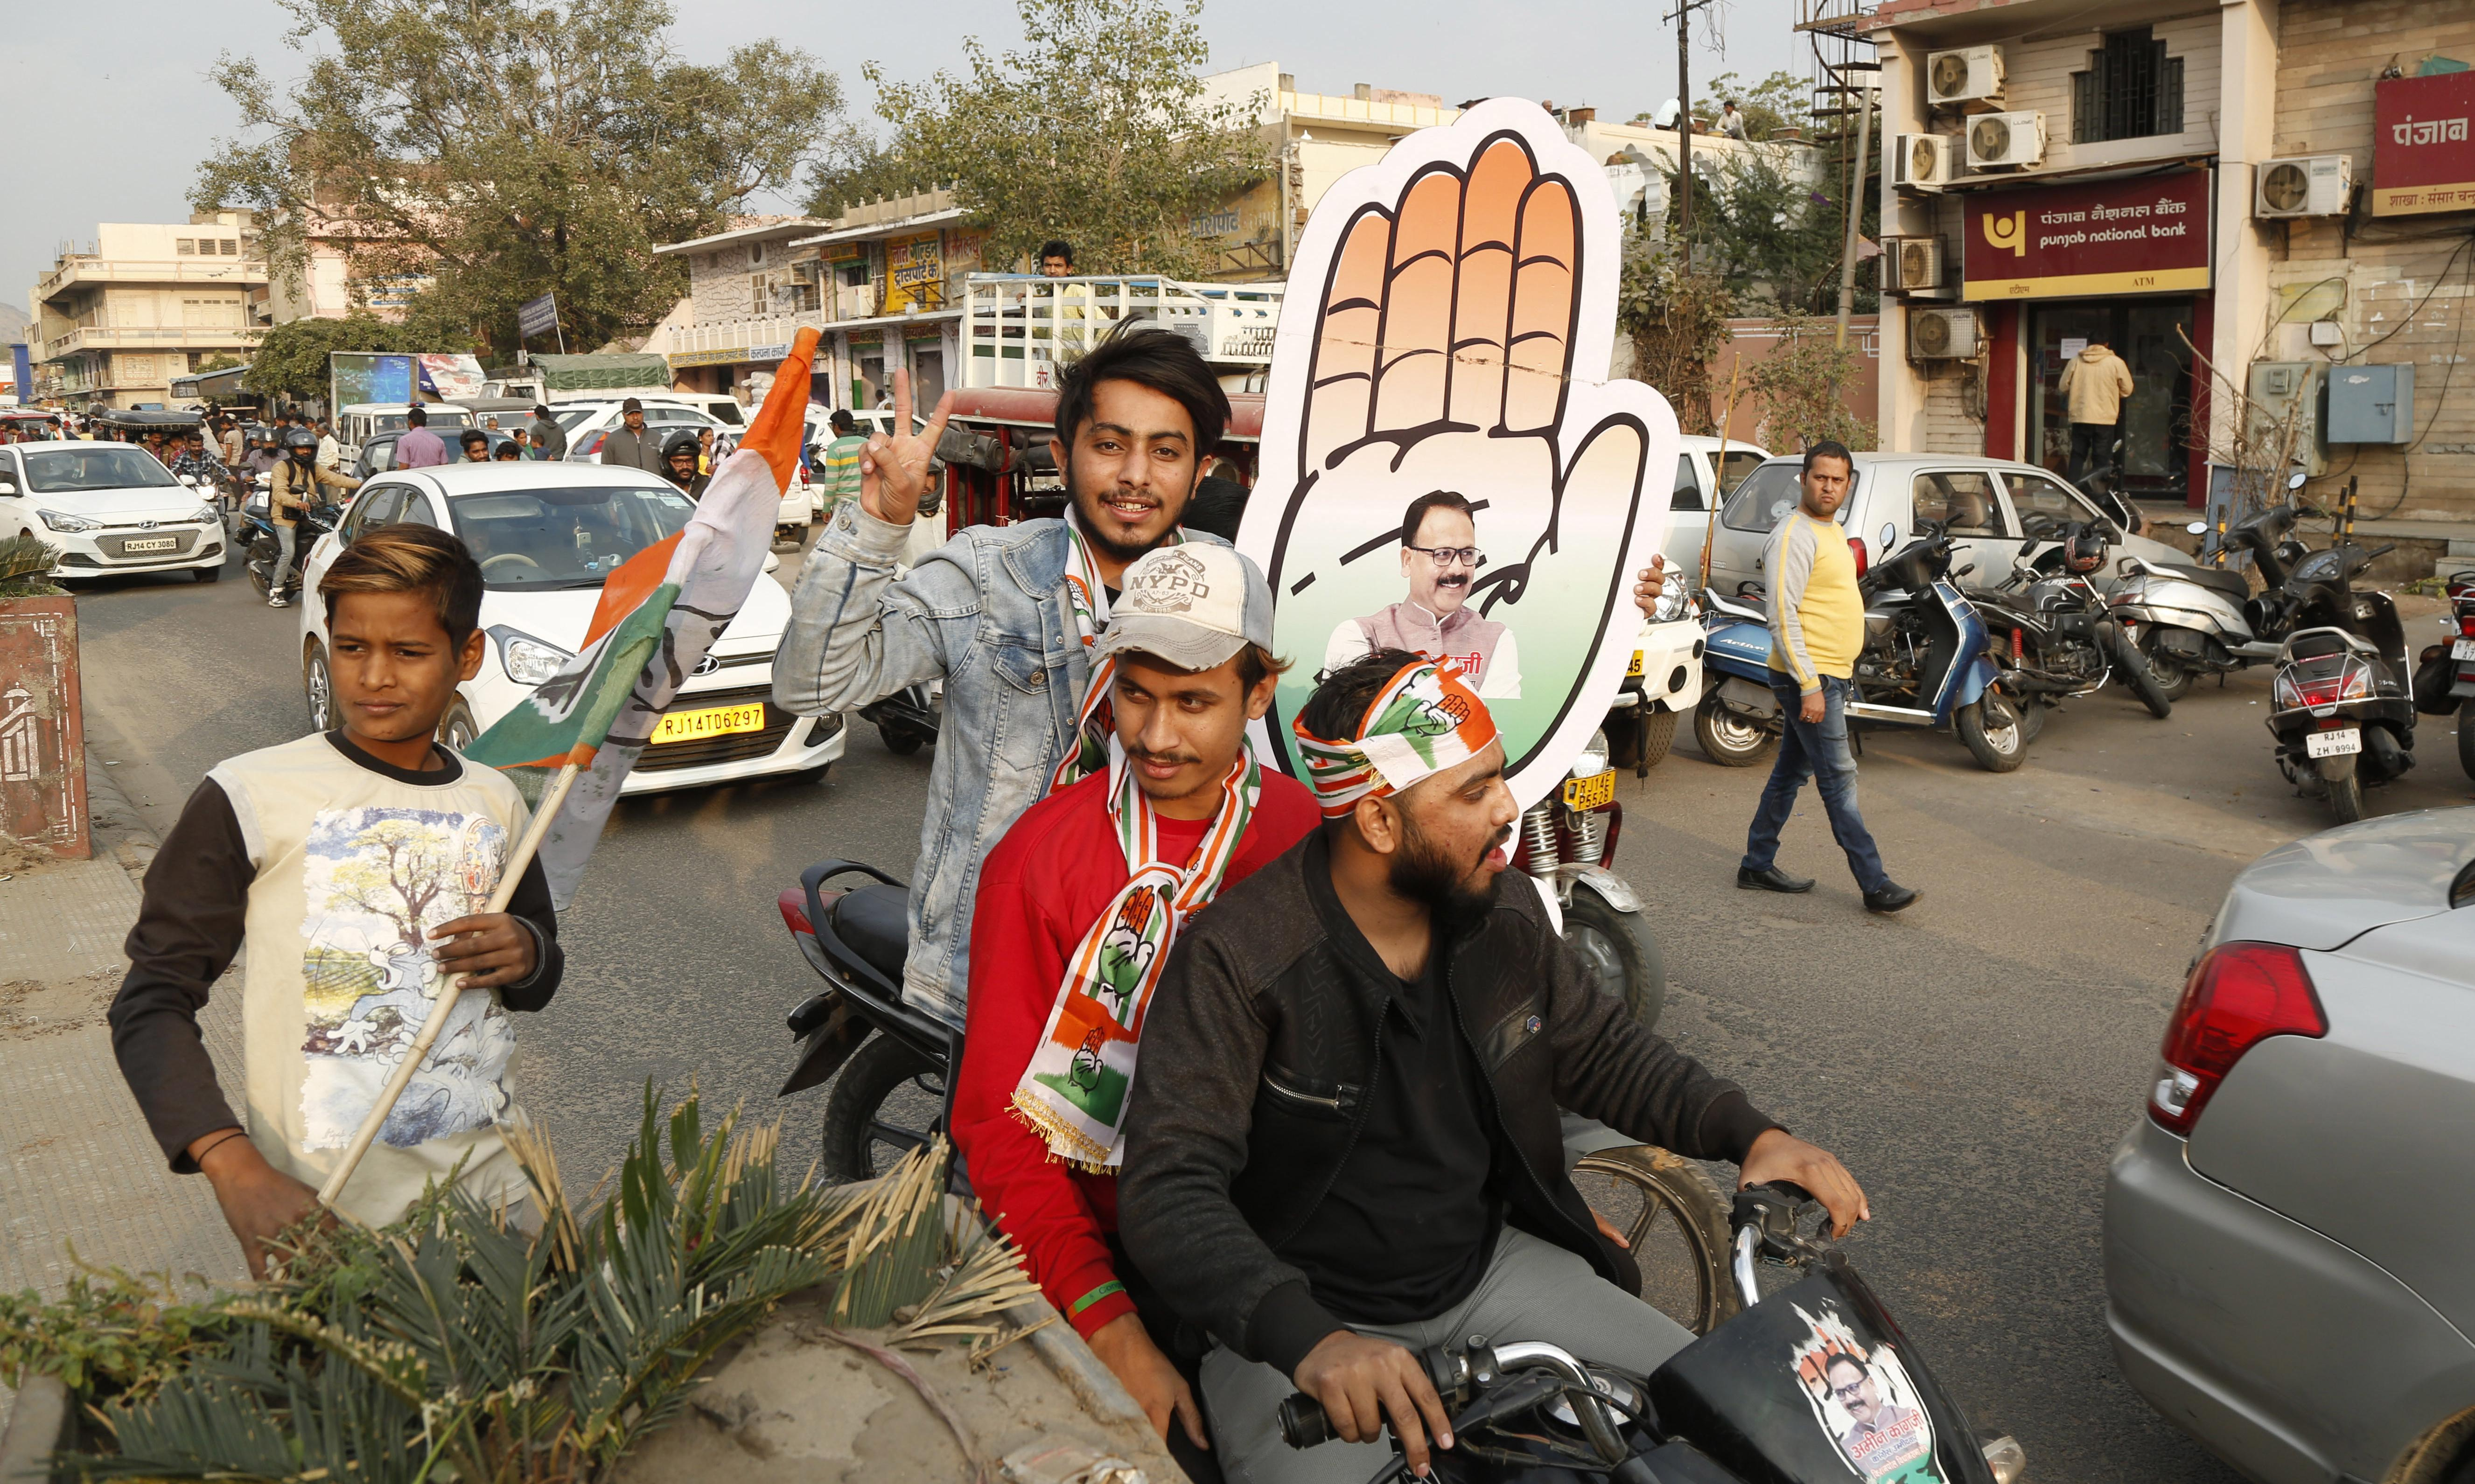 Cow and happiness ministers ousted in Indian state elections